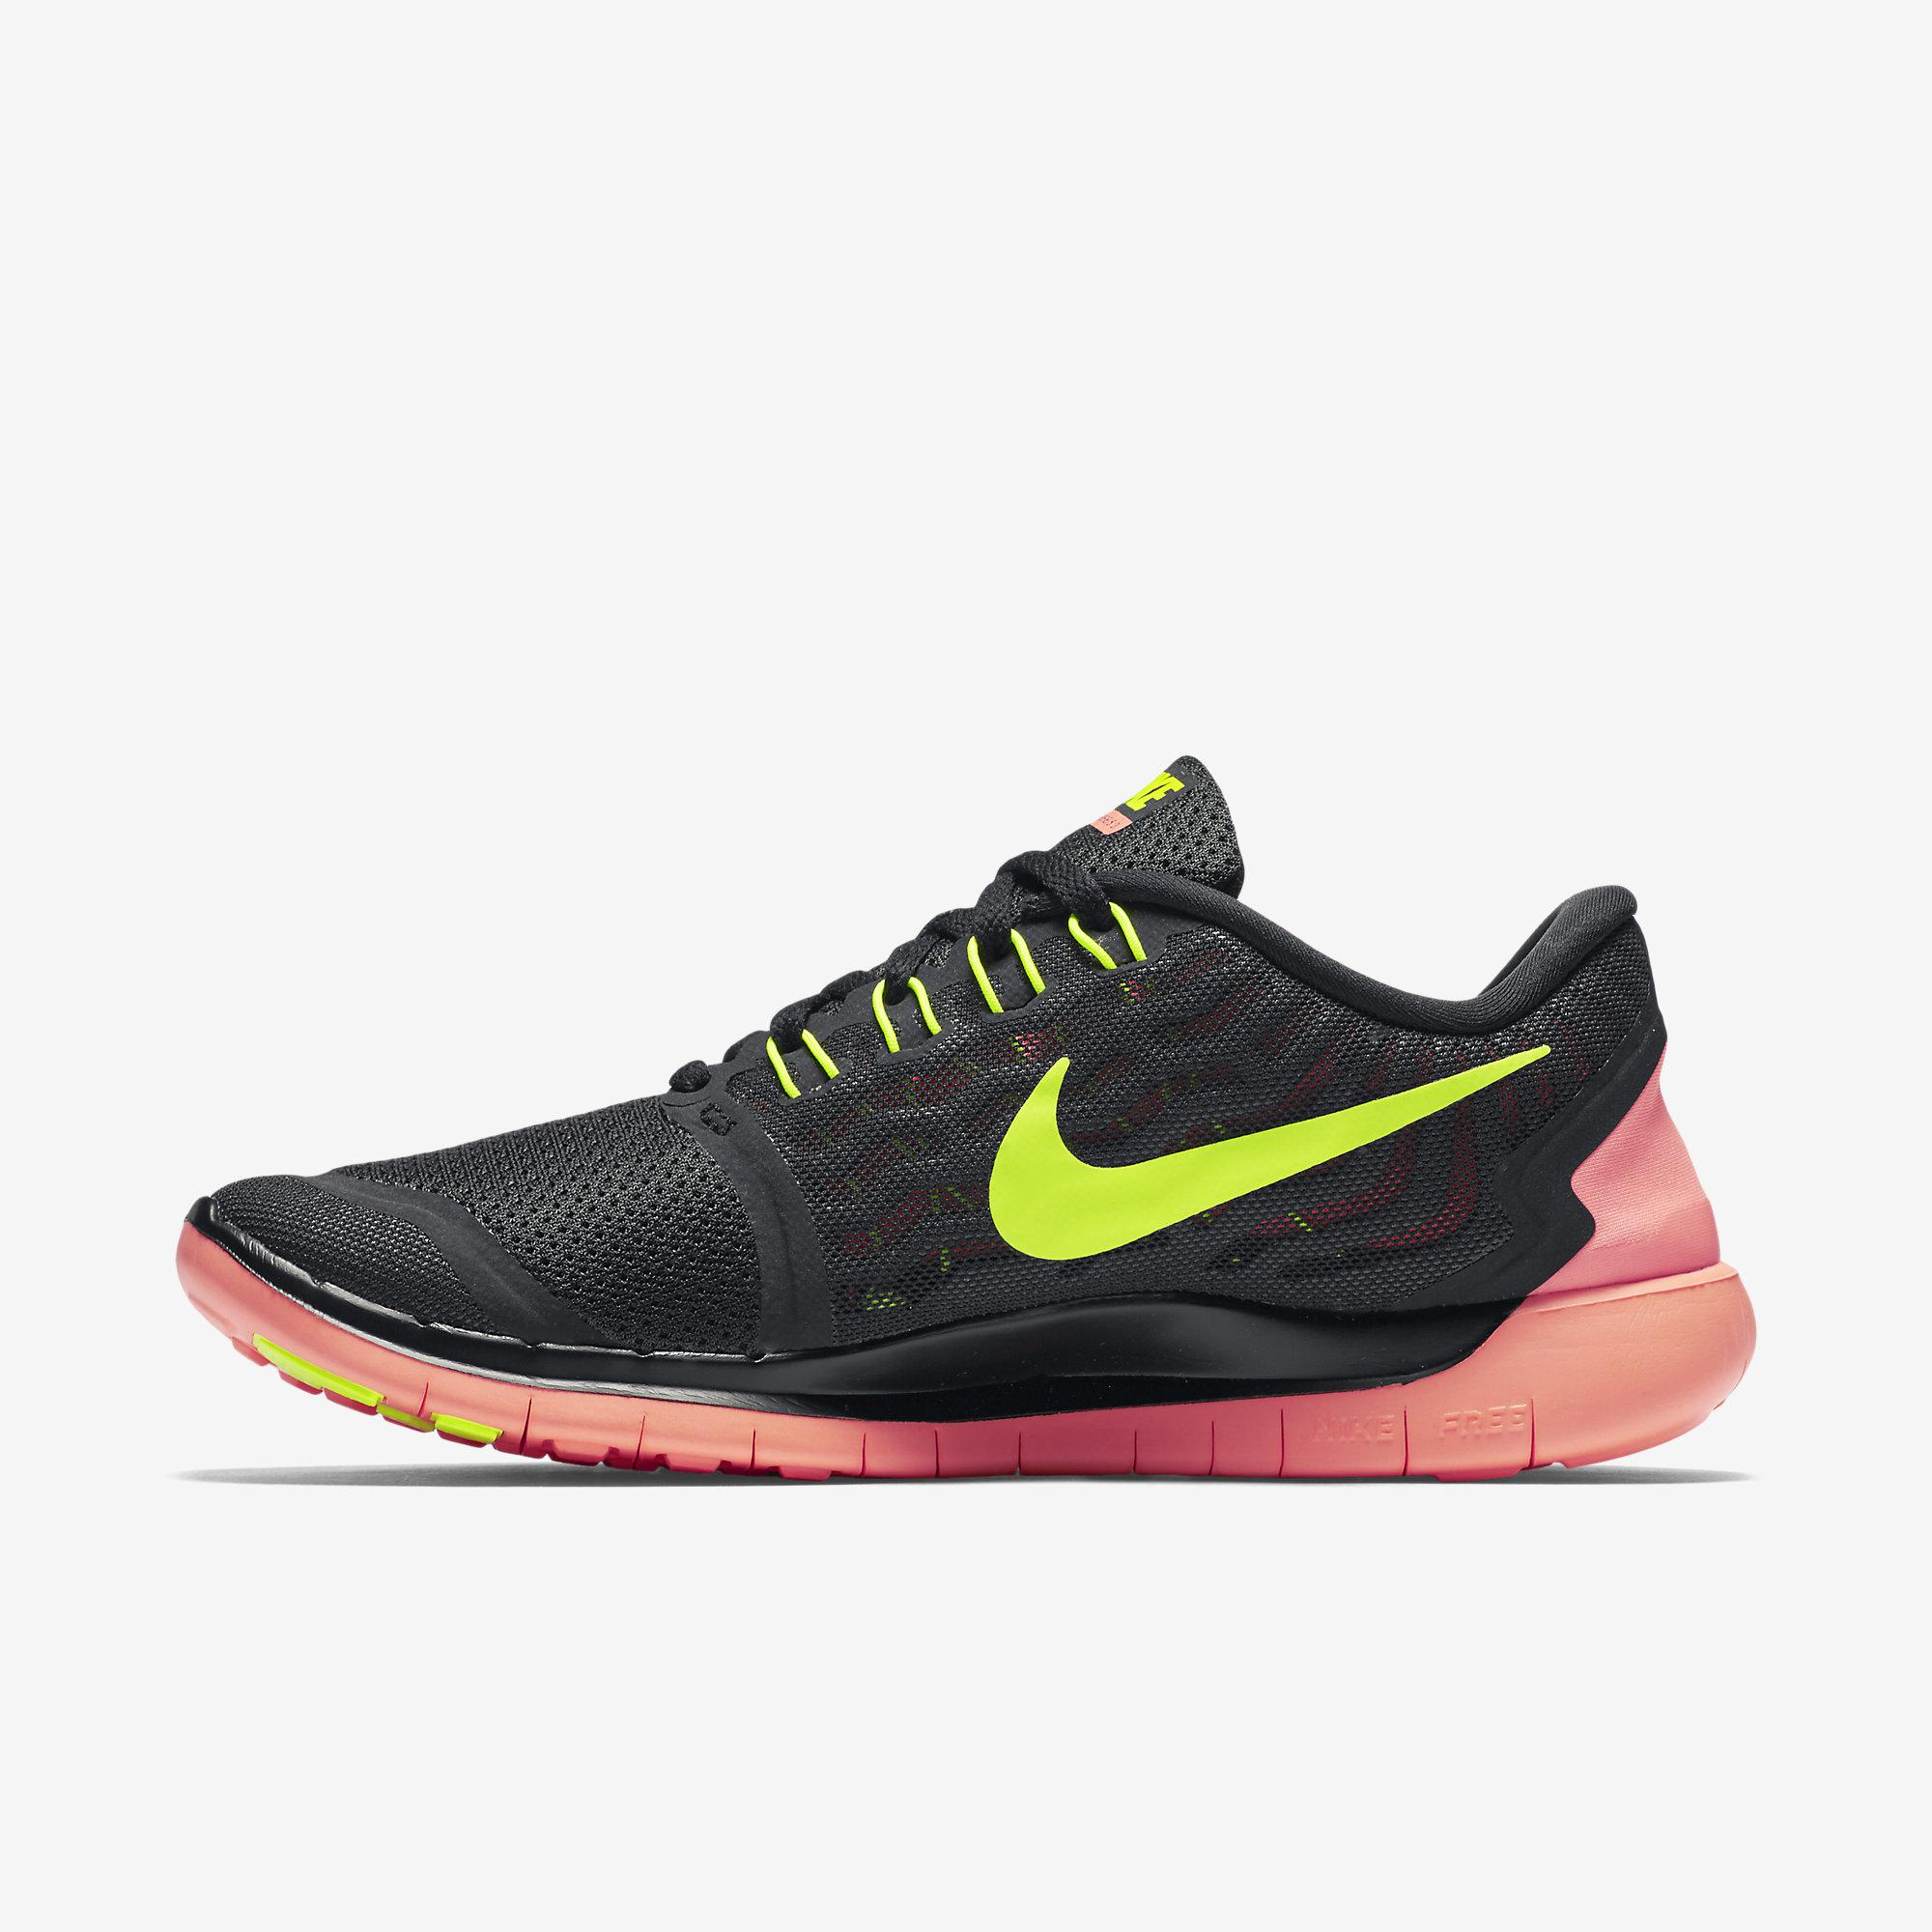 size 40 4d3d9 a2dc2 ... where can i buy nike womens free 5.0 running shoes black yellow mango  72d75 68e26